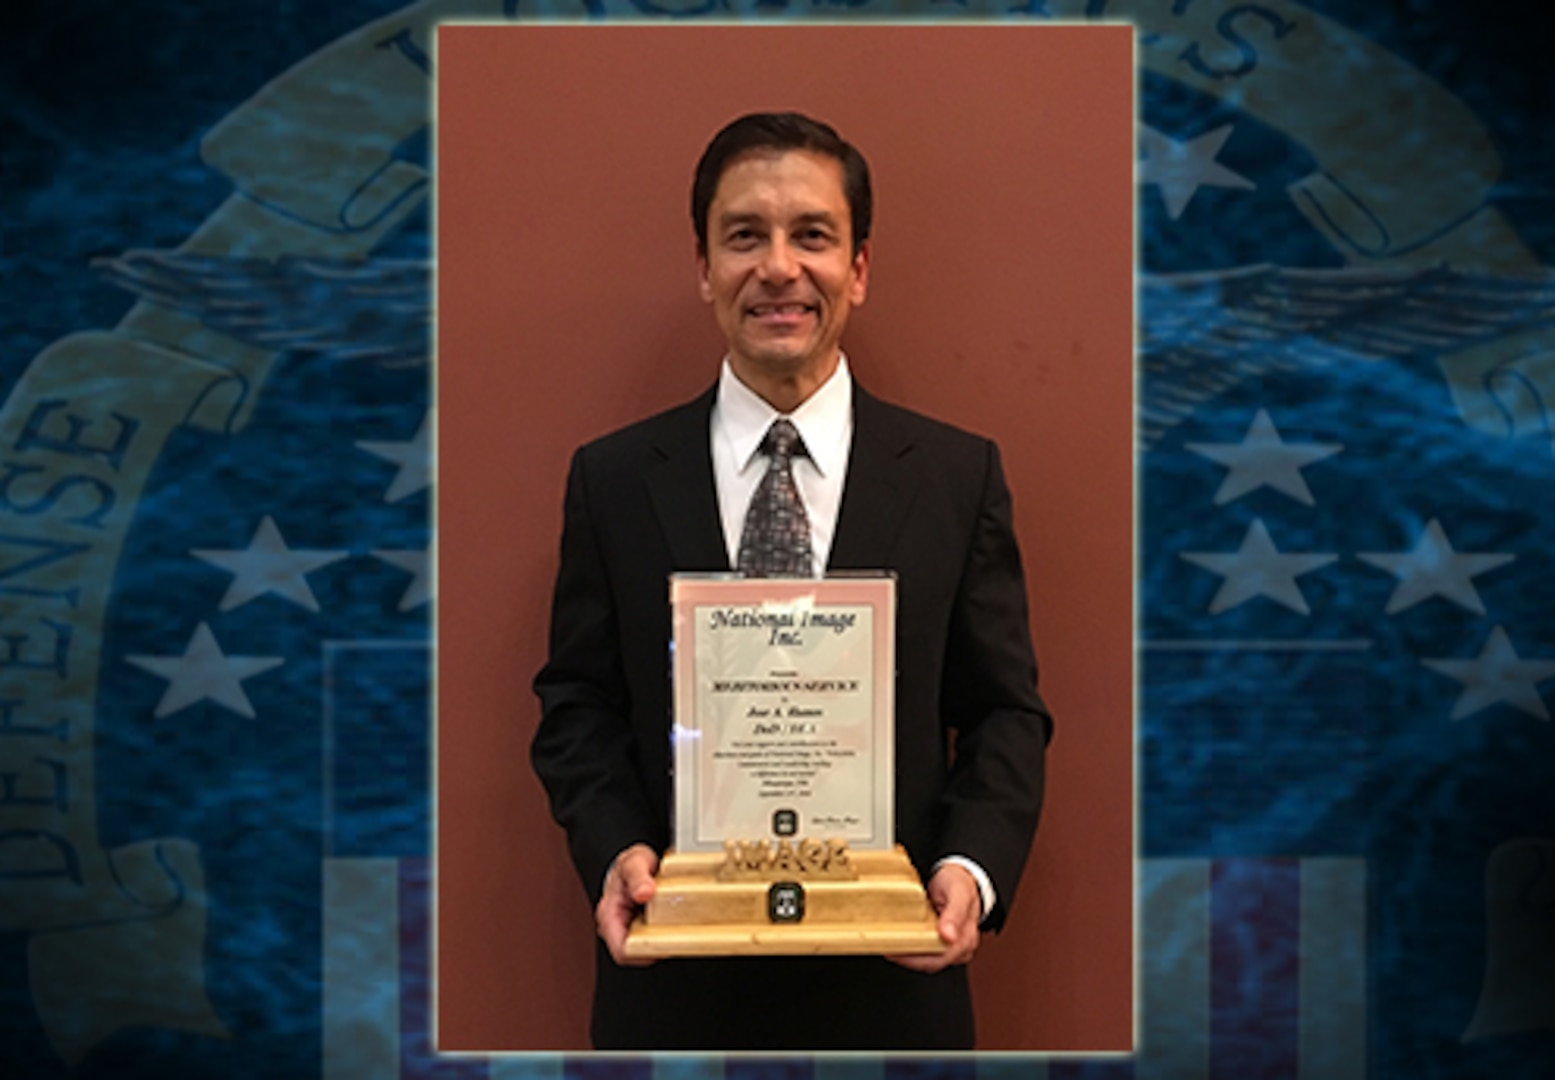 José Ramos is a pharmacist with DLA Troop Support's Medical supply chain and earned a National Image Meritorious Service Award for promoting diversity in the workplace.